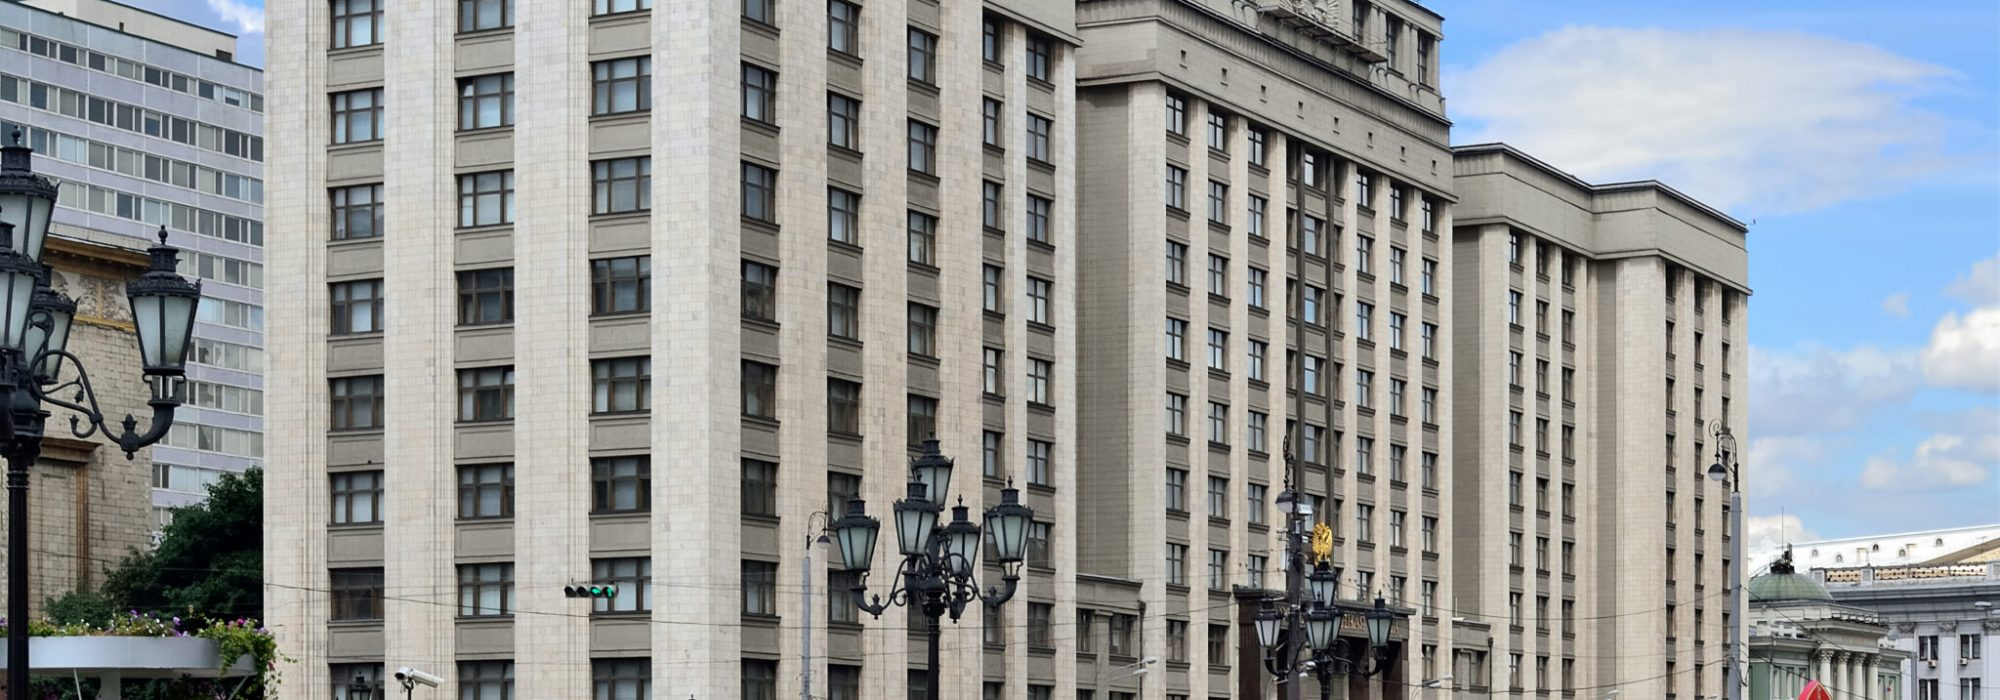 Moscow. The building of the Council of Labor and Defense, currently (2017) – the building of the State Duma. 1935. Architect Arkady Langman.